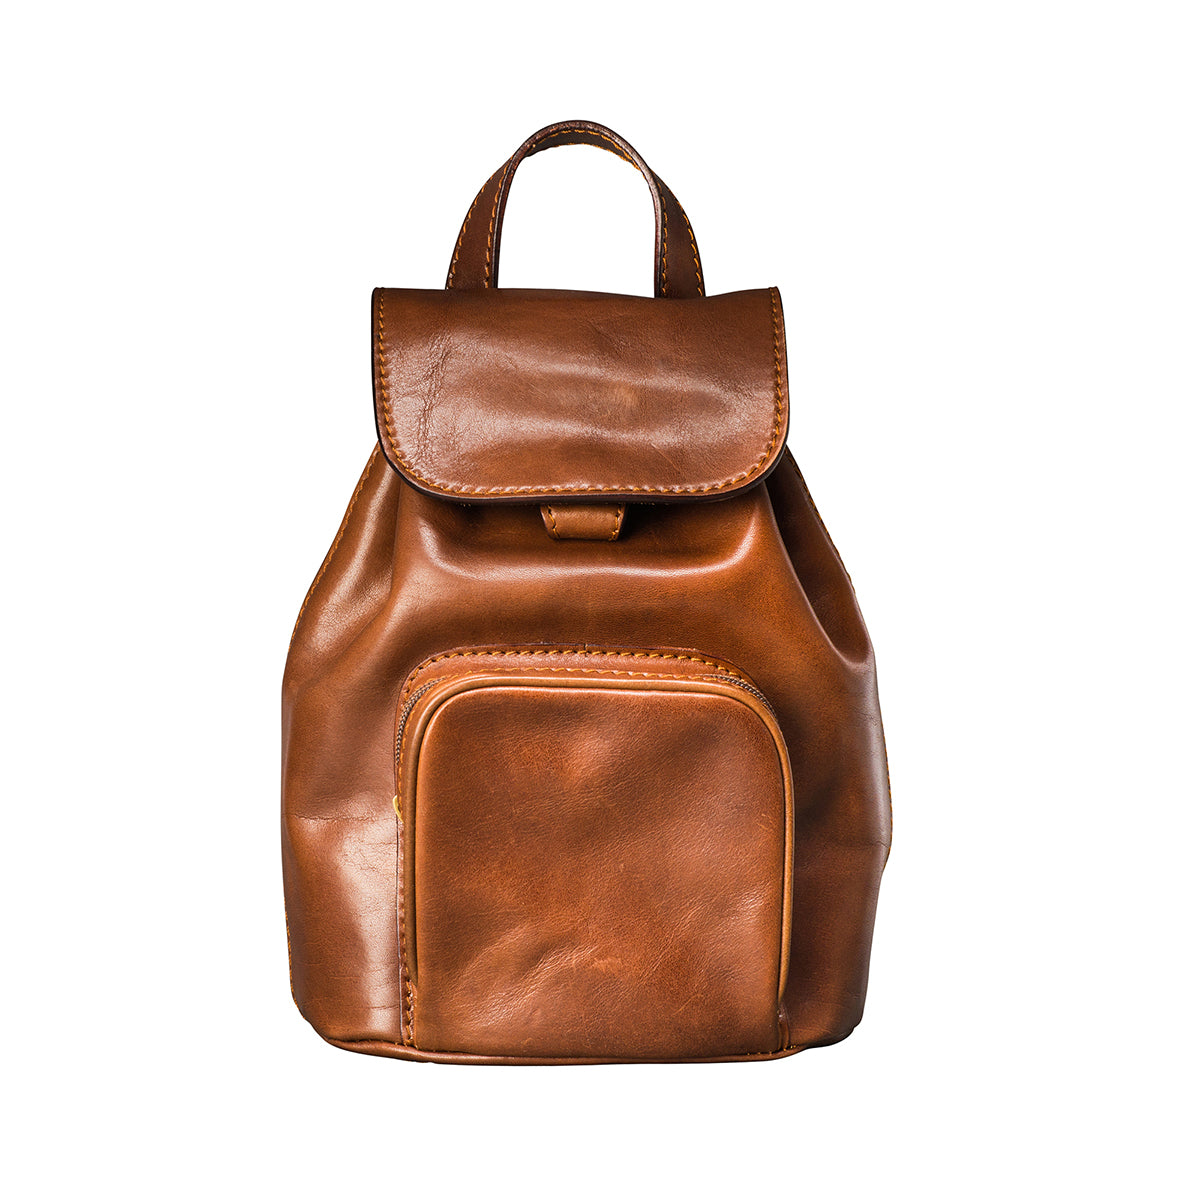 Image 1 of the 'Popolo' Compact Chestnut Veg-Tanned Leather Shoulder Bag